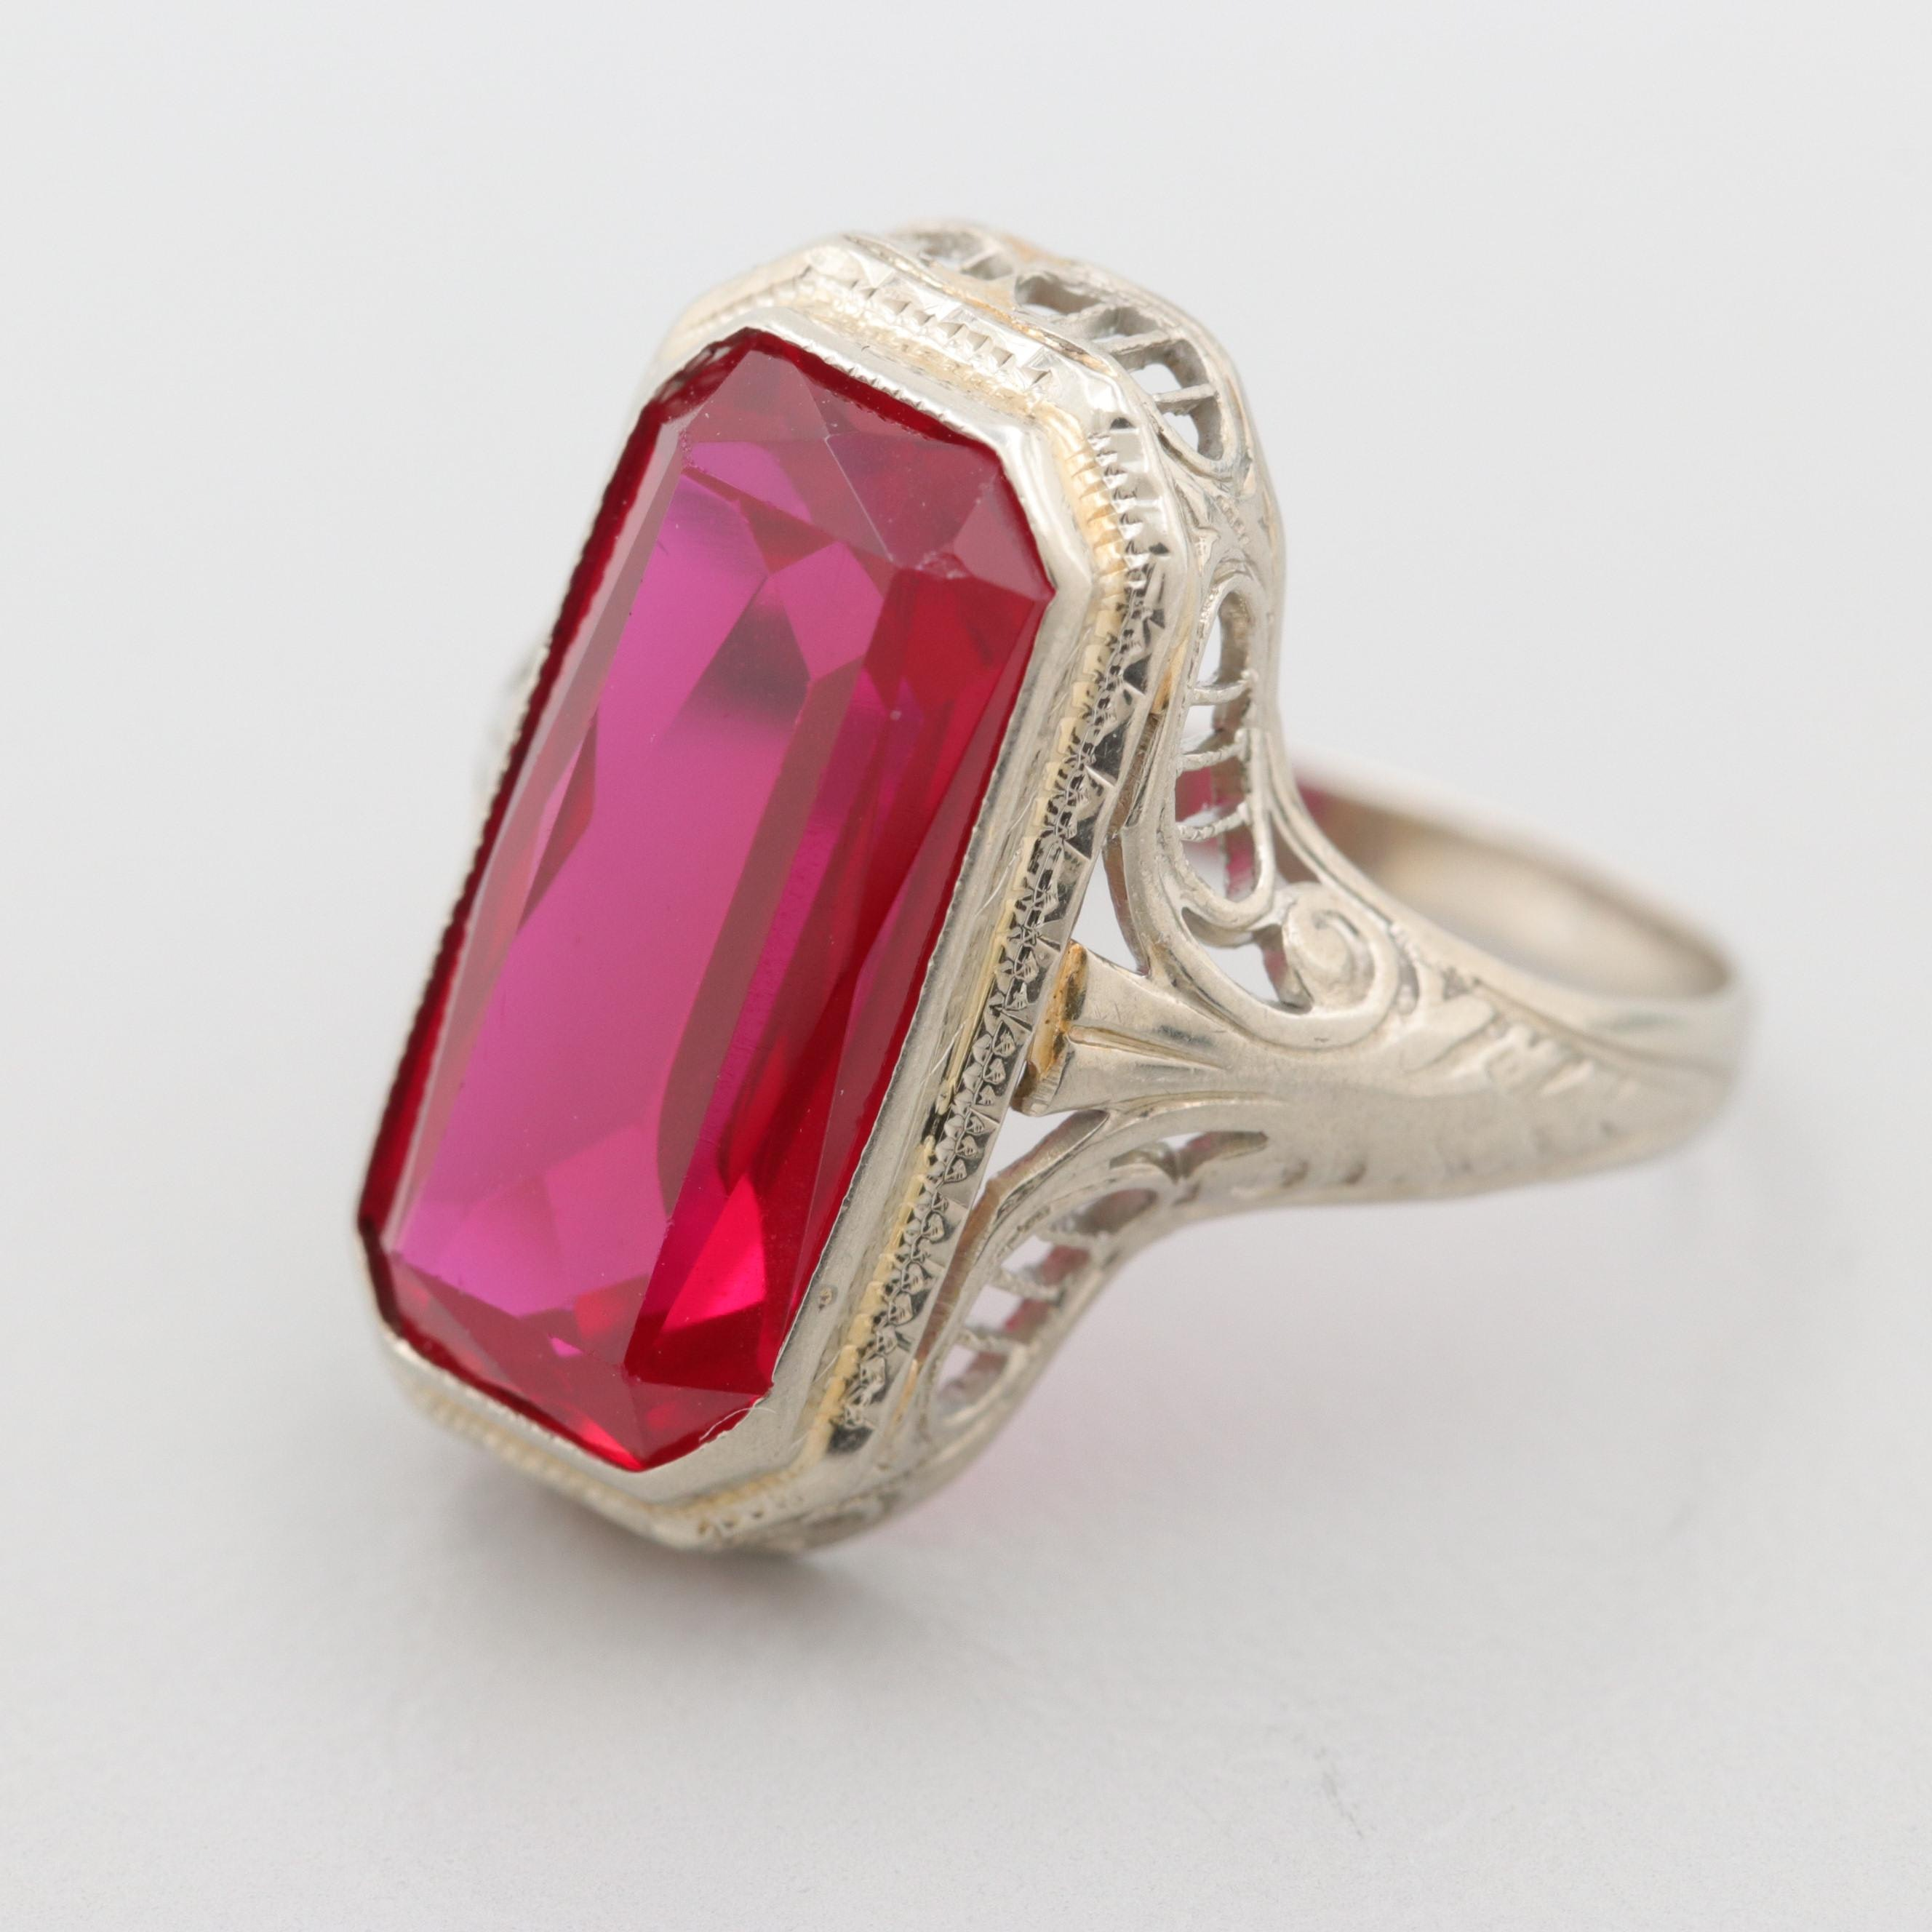 Art Deco 18K White Gold Synthetic Ruby Filigree Ring